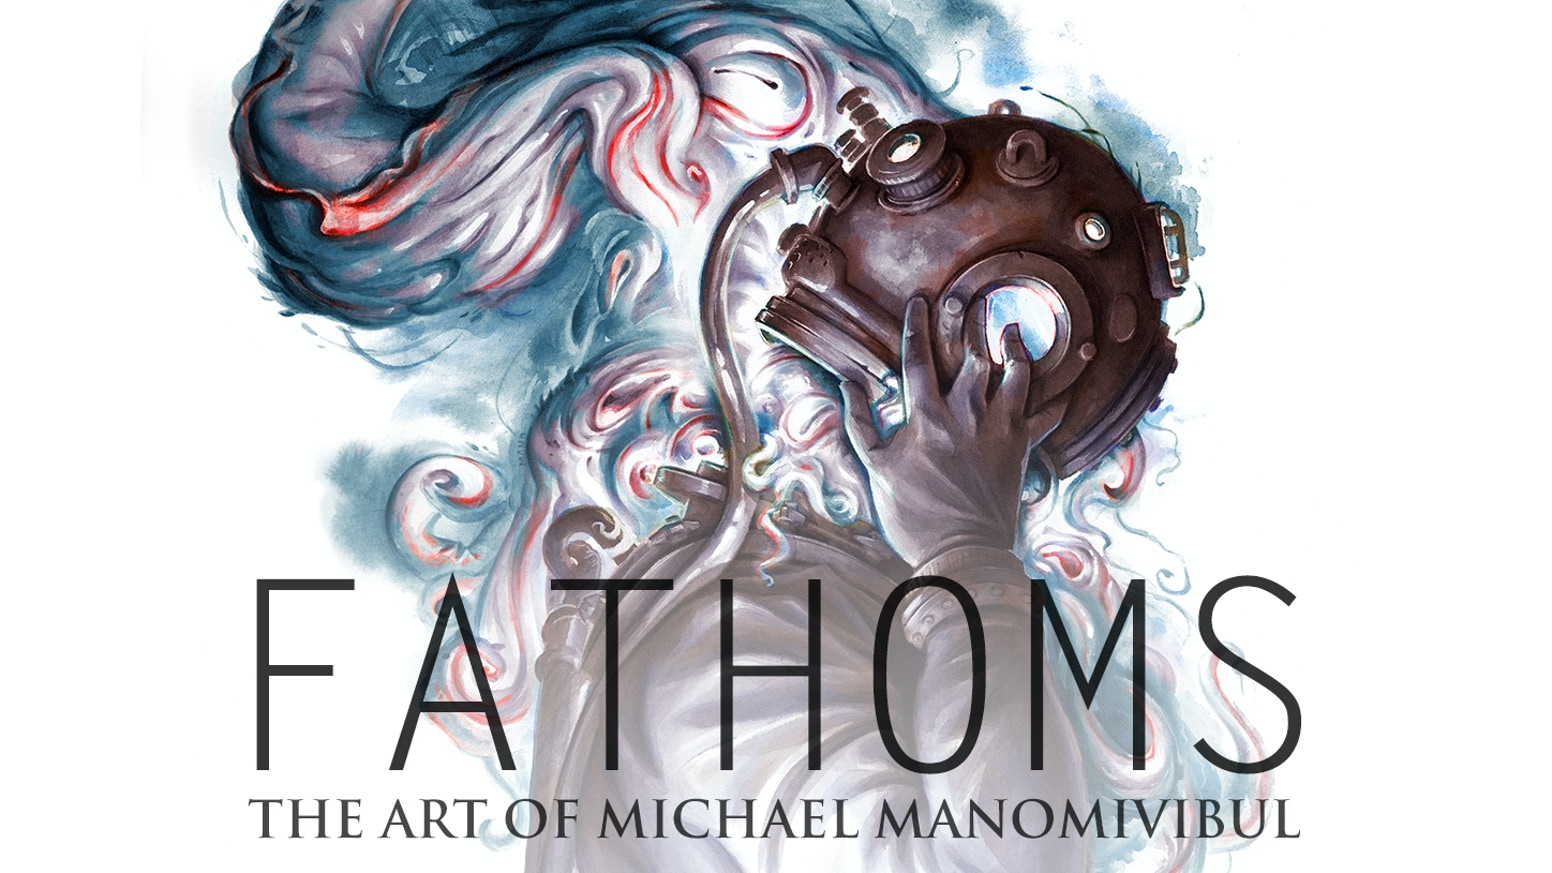 Fathoms: the art of Michael Manomivibul